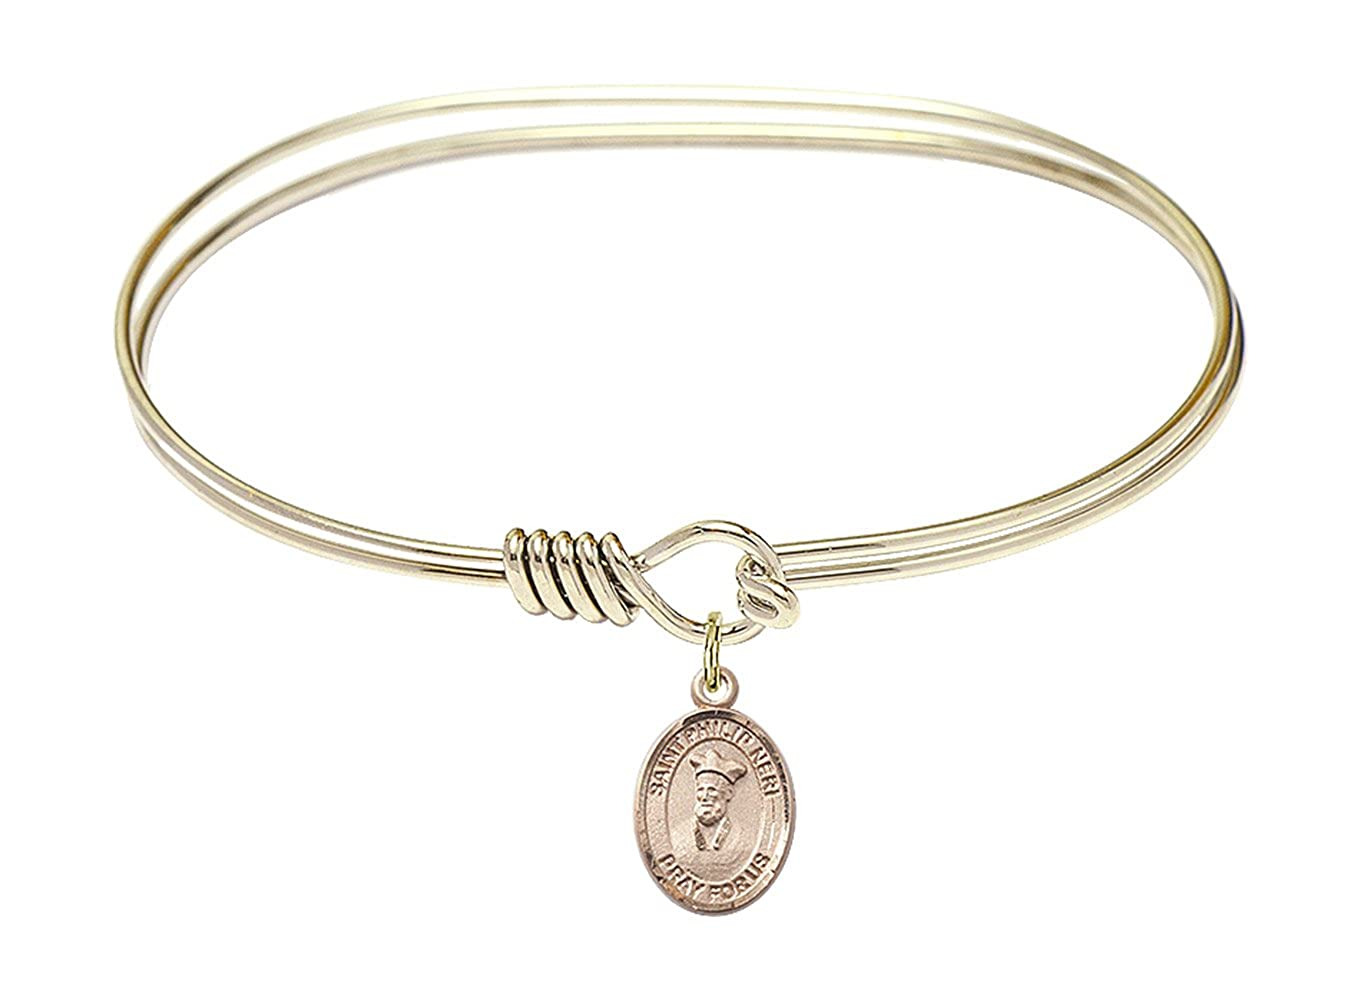 DiamondJewelryNY Eye Hook Bangle Bracelet with a St Philip Neri Charm.